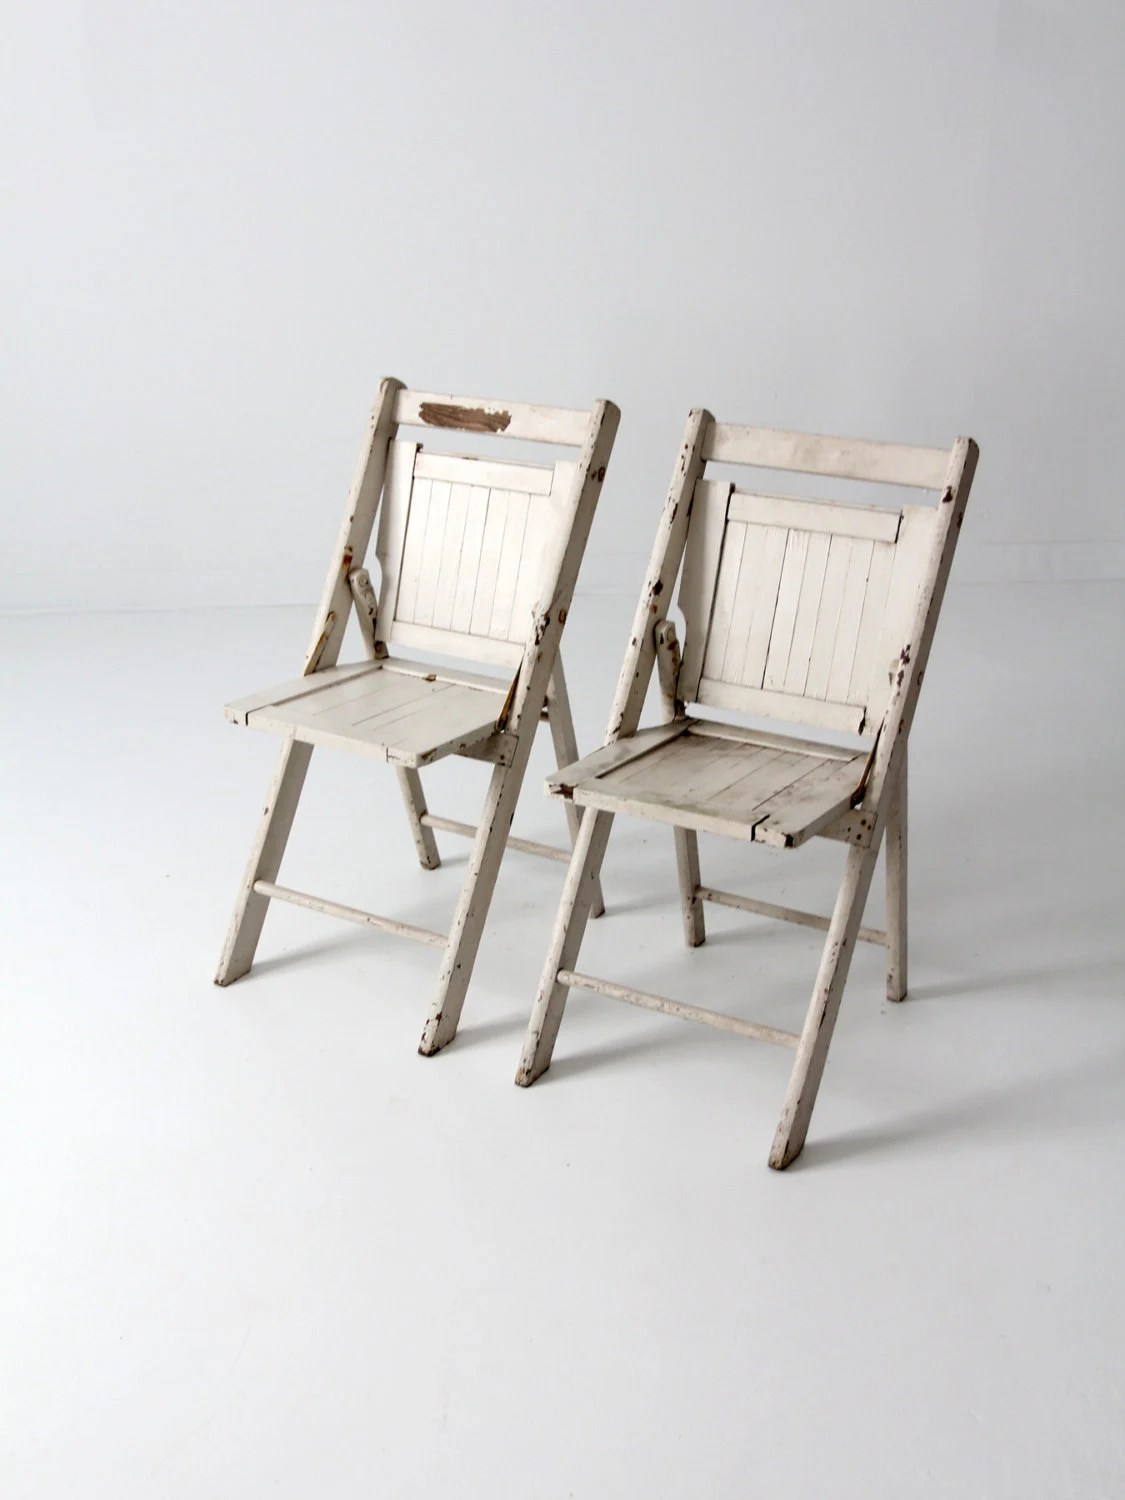 Folding White Chairs Vintage Wood Folding Chairs Pair White Slat Chairs